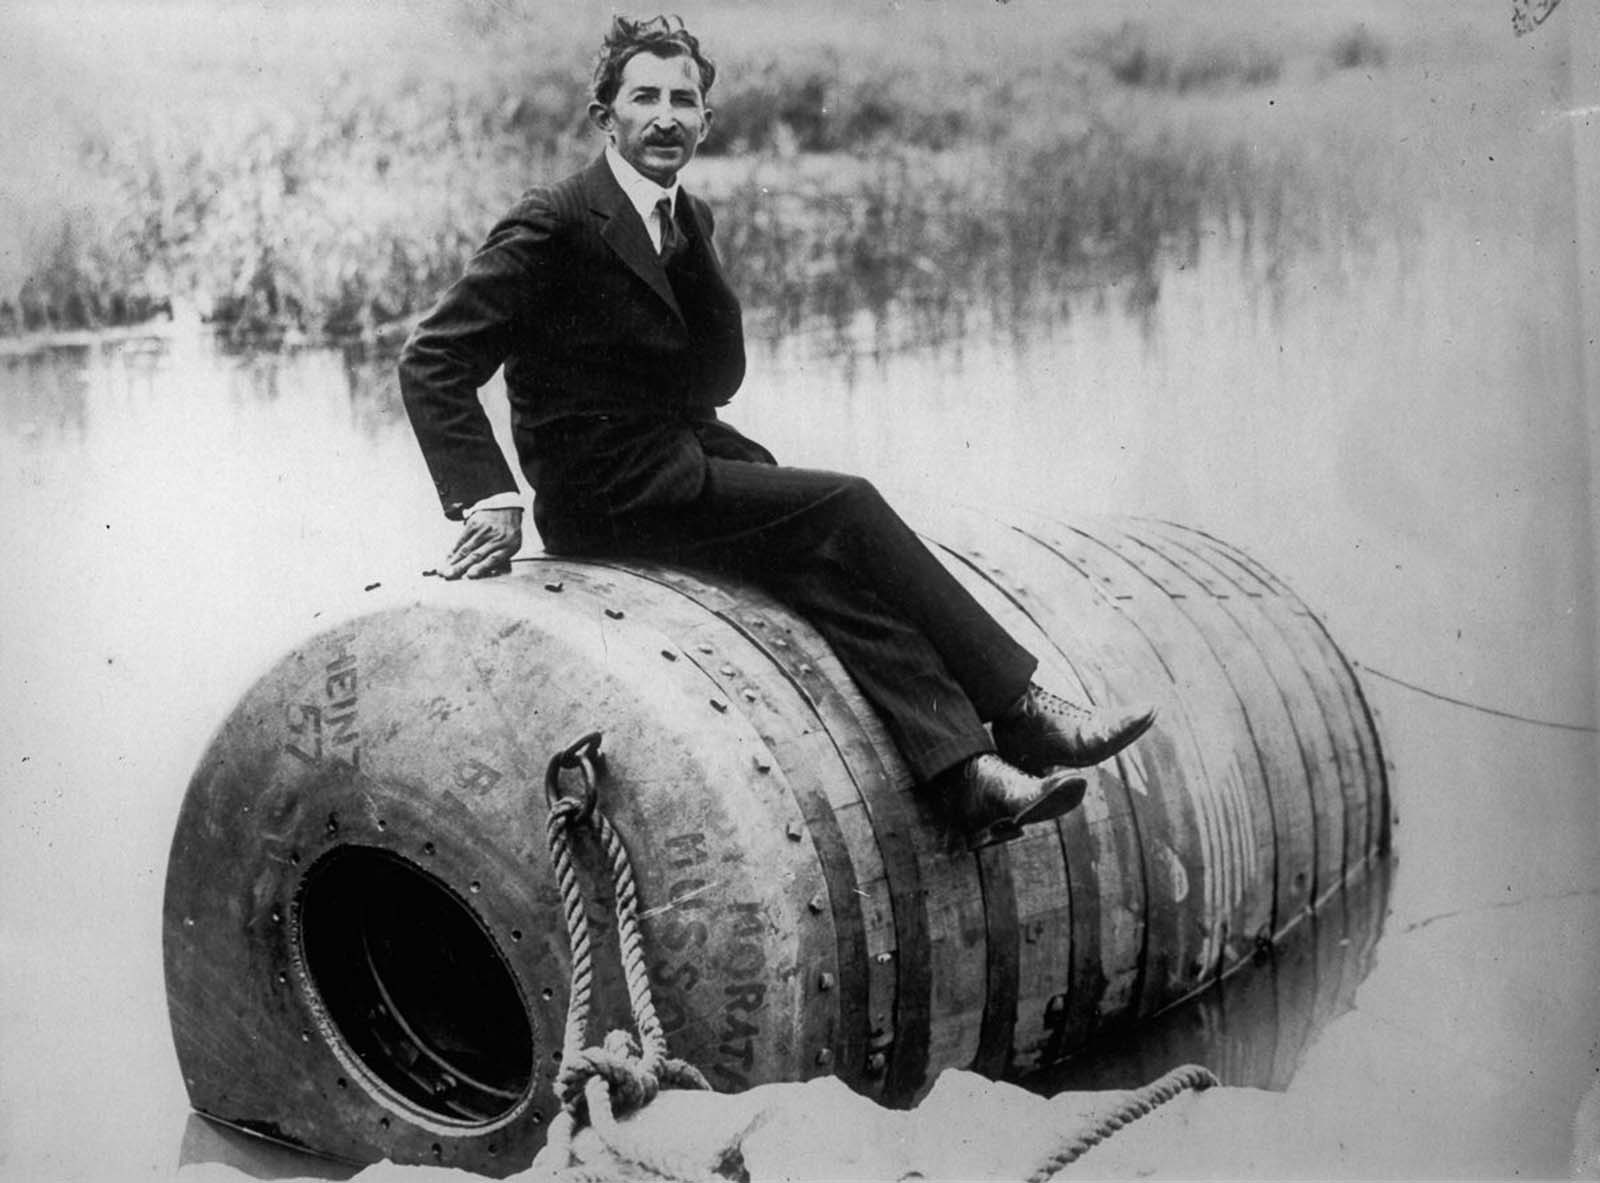 George Stathakis poses on his barrel before taking the plunge. 1930.